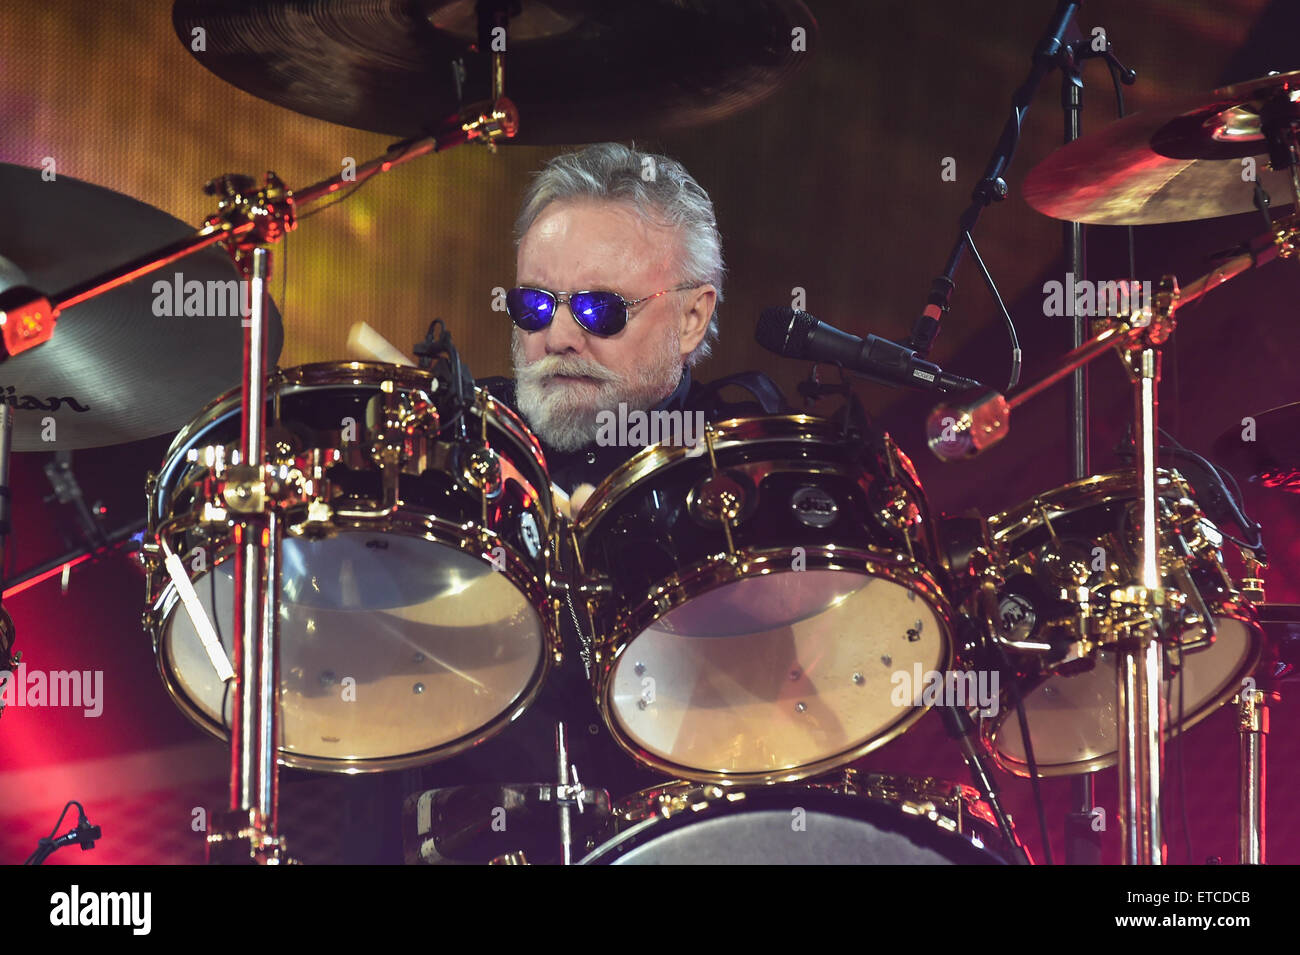 Queen and Adam Lambert perform live at the O2 Arena  Featuring: Roger Taylor Where: London, United Kingdom When: - Stock Image